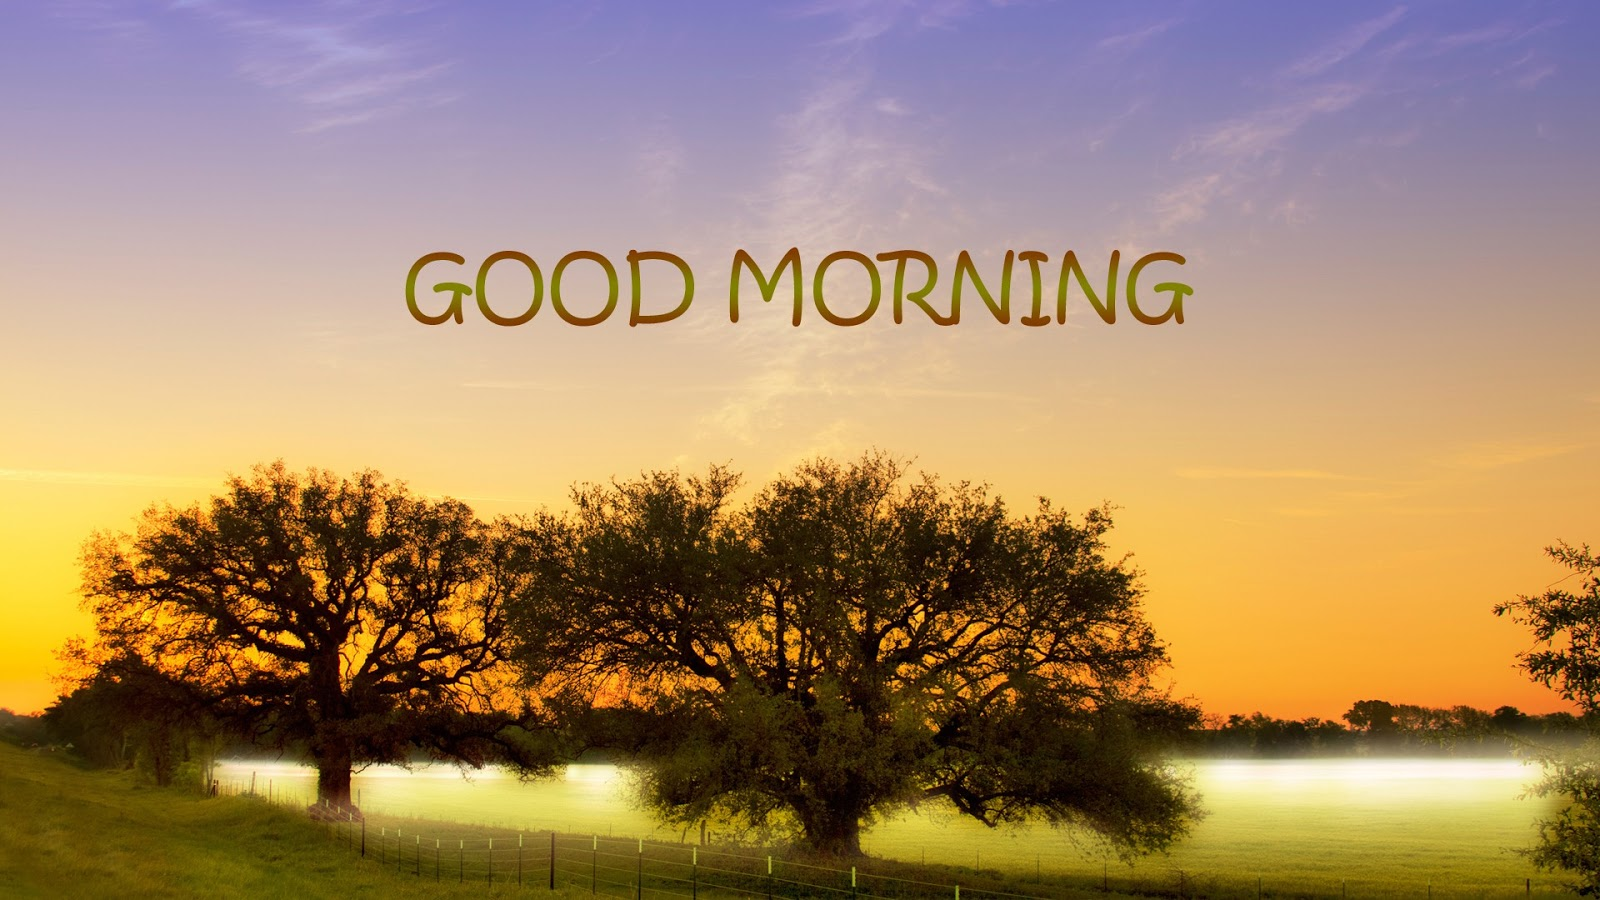 Best Good Morning Hd Wallpapers, Download Good Morning -6618